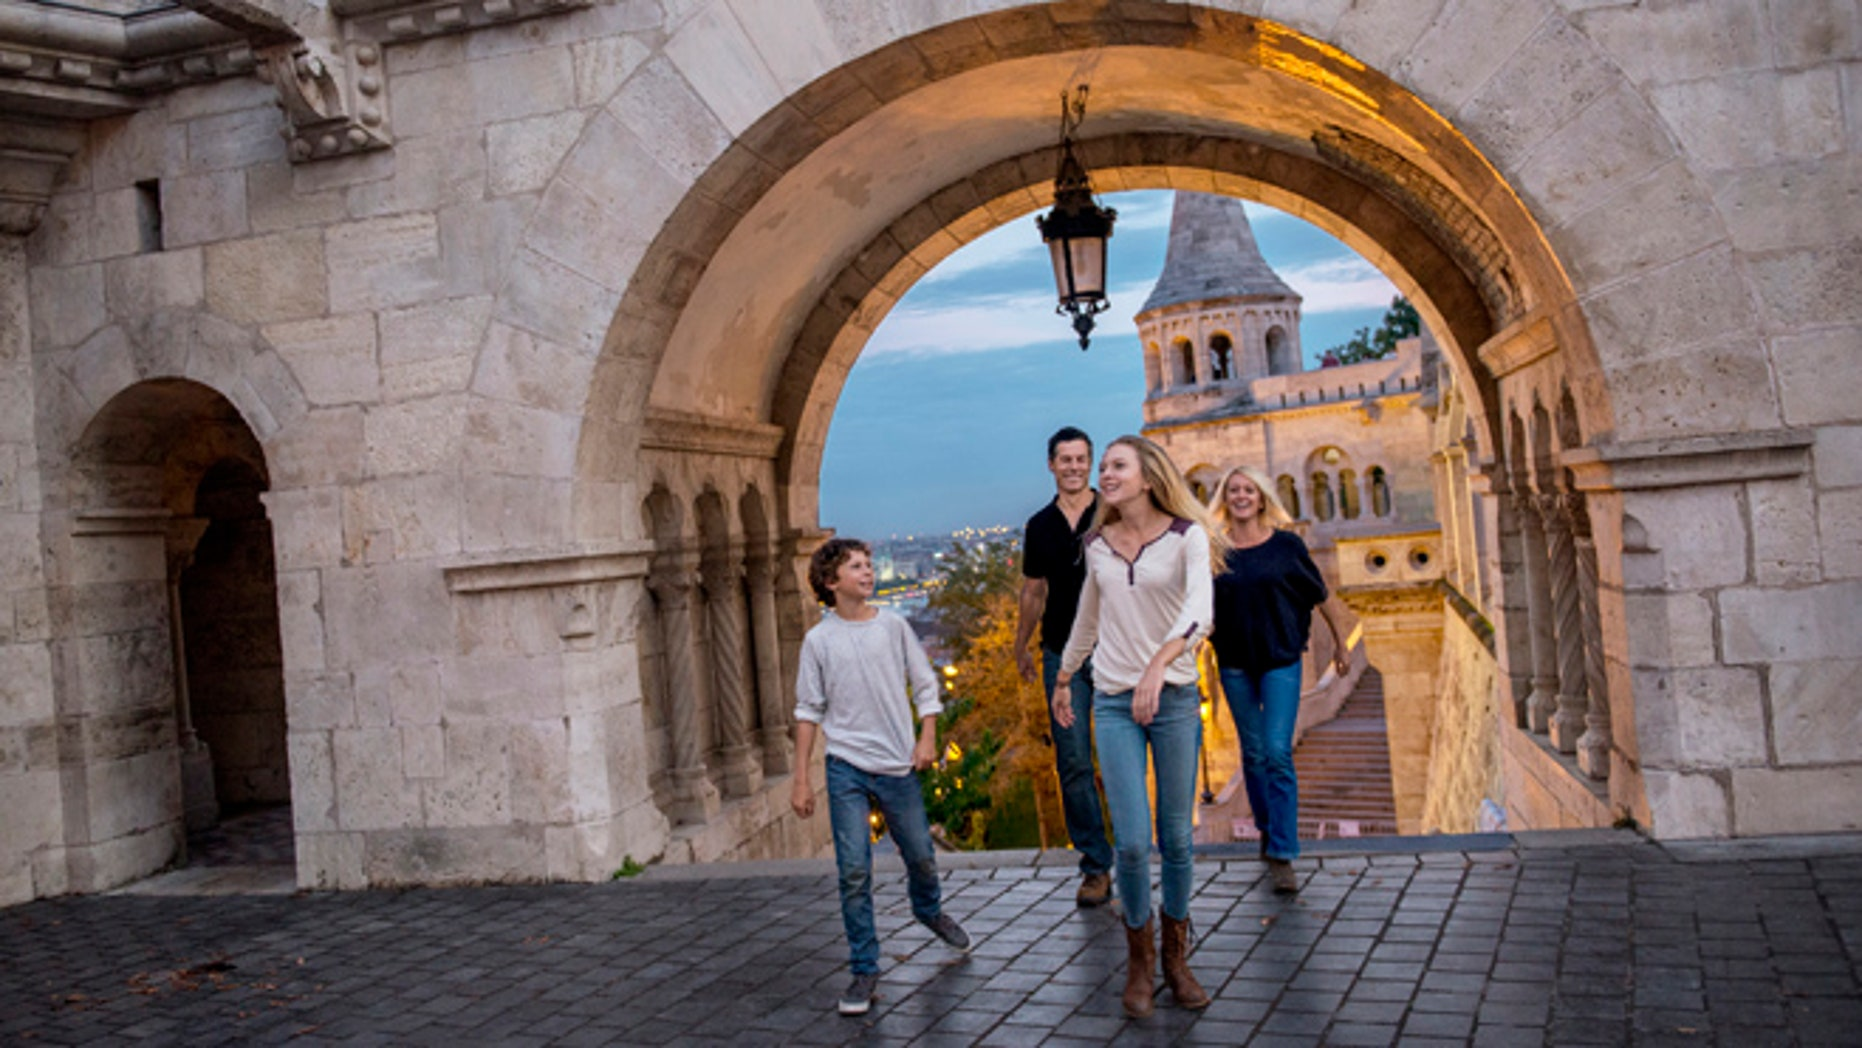 if you're picturing photo ops with Anna and Elsa in front of Austria's Dürnstein Castle, you have it all wrong.